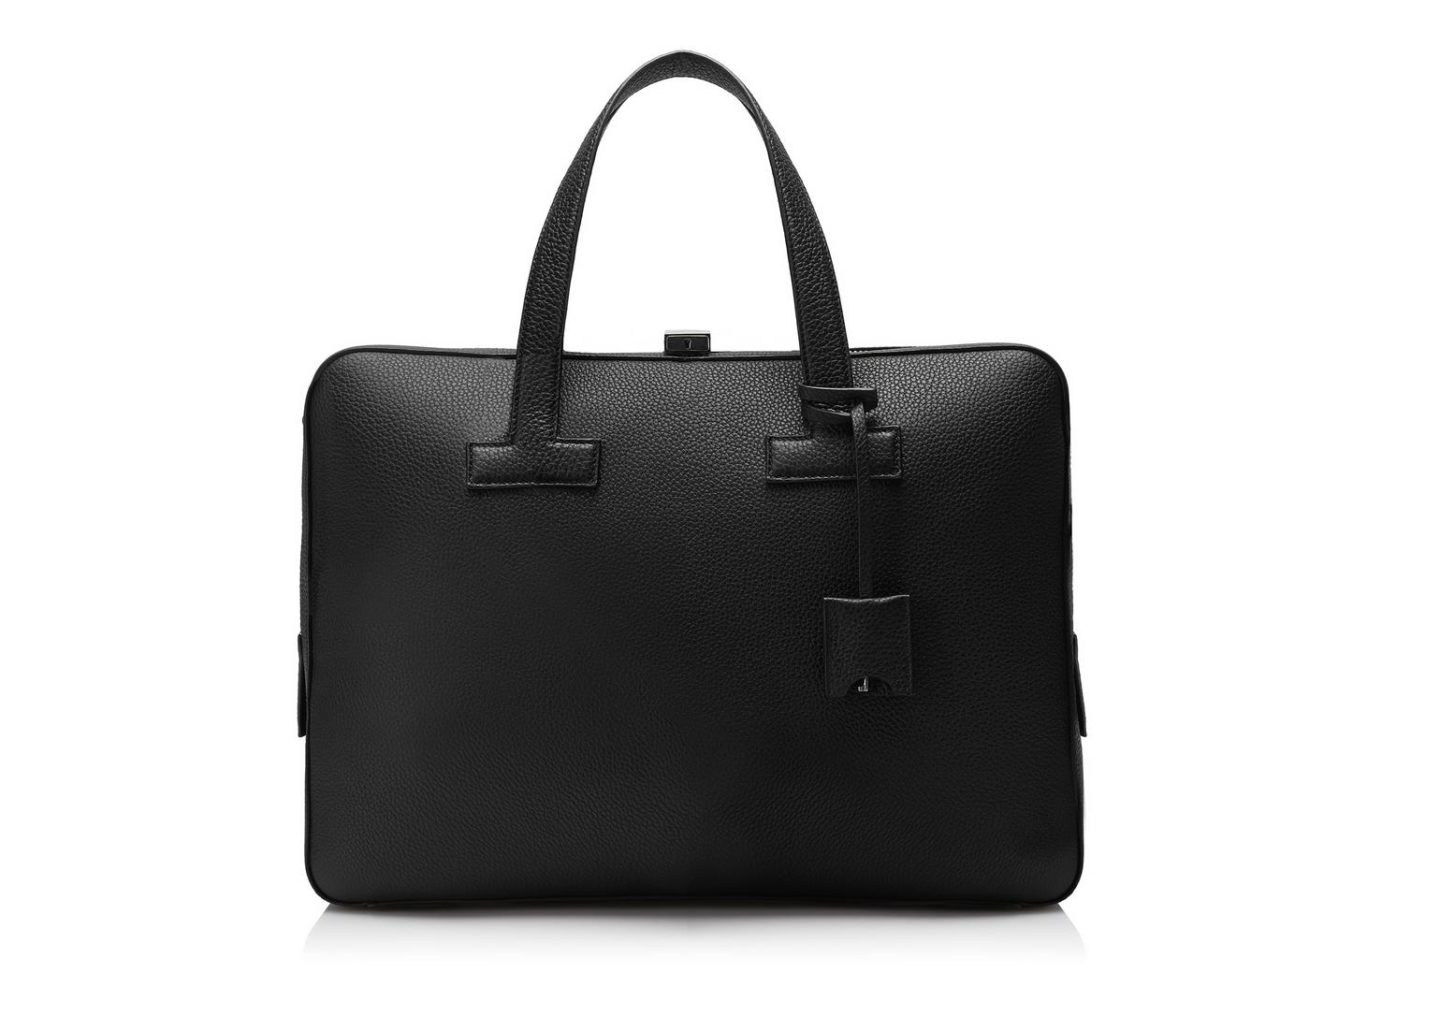 luxury gifts for men who have everything: leather briefcase